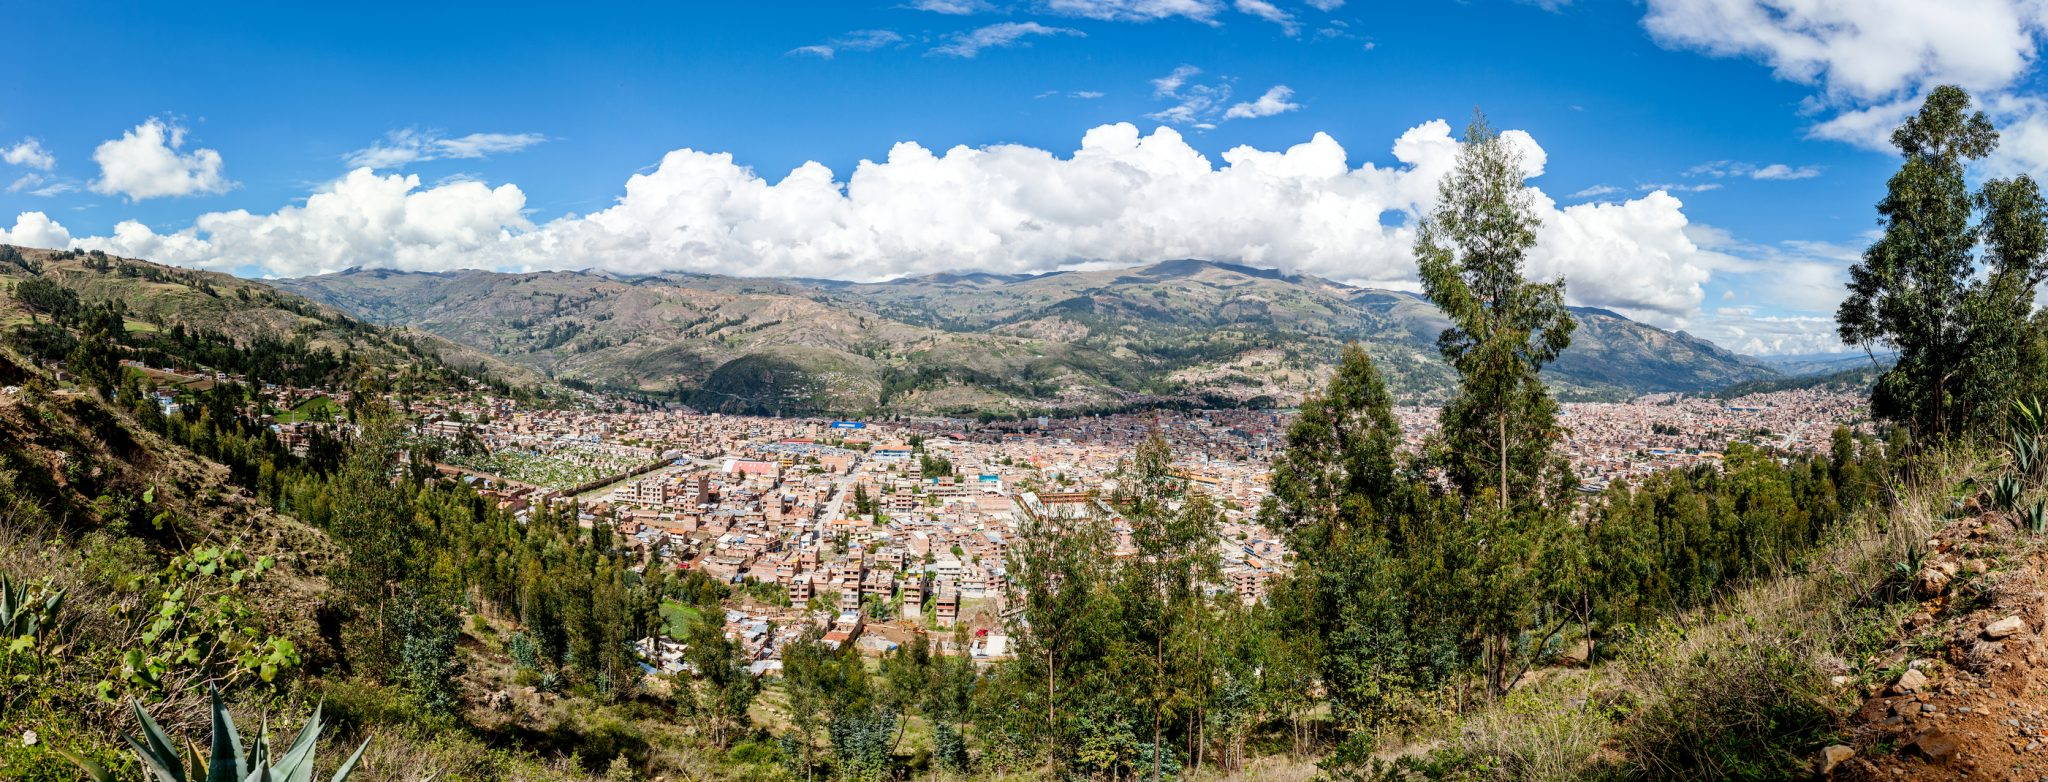 Panoramic view of Huaraz, Peru